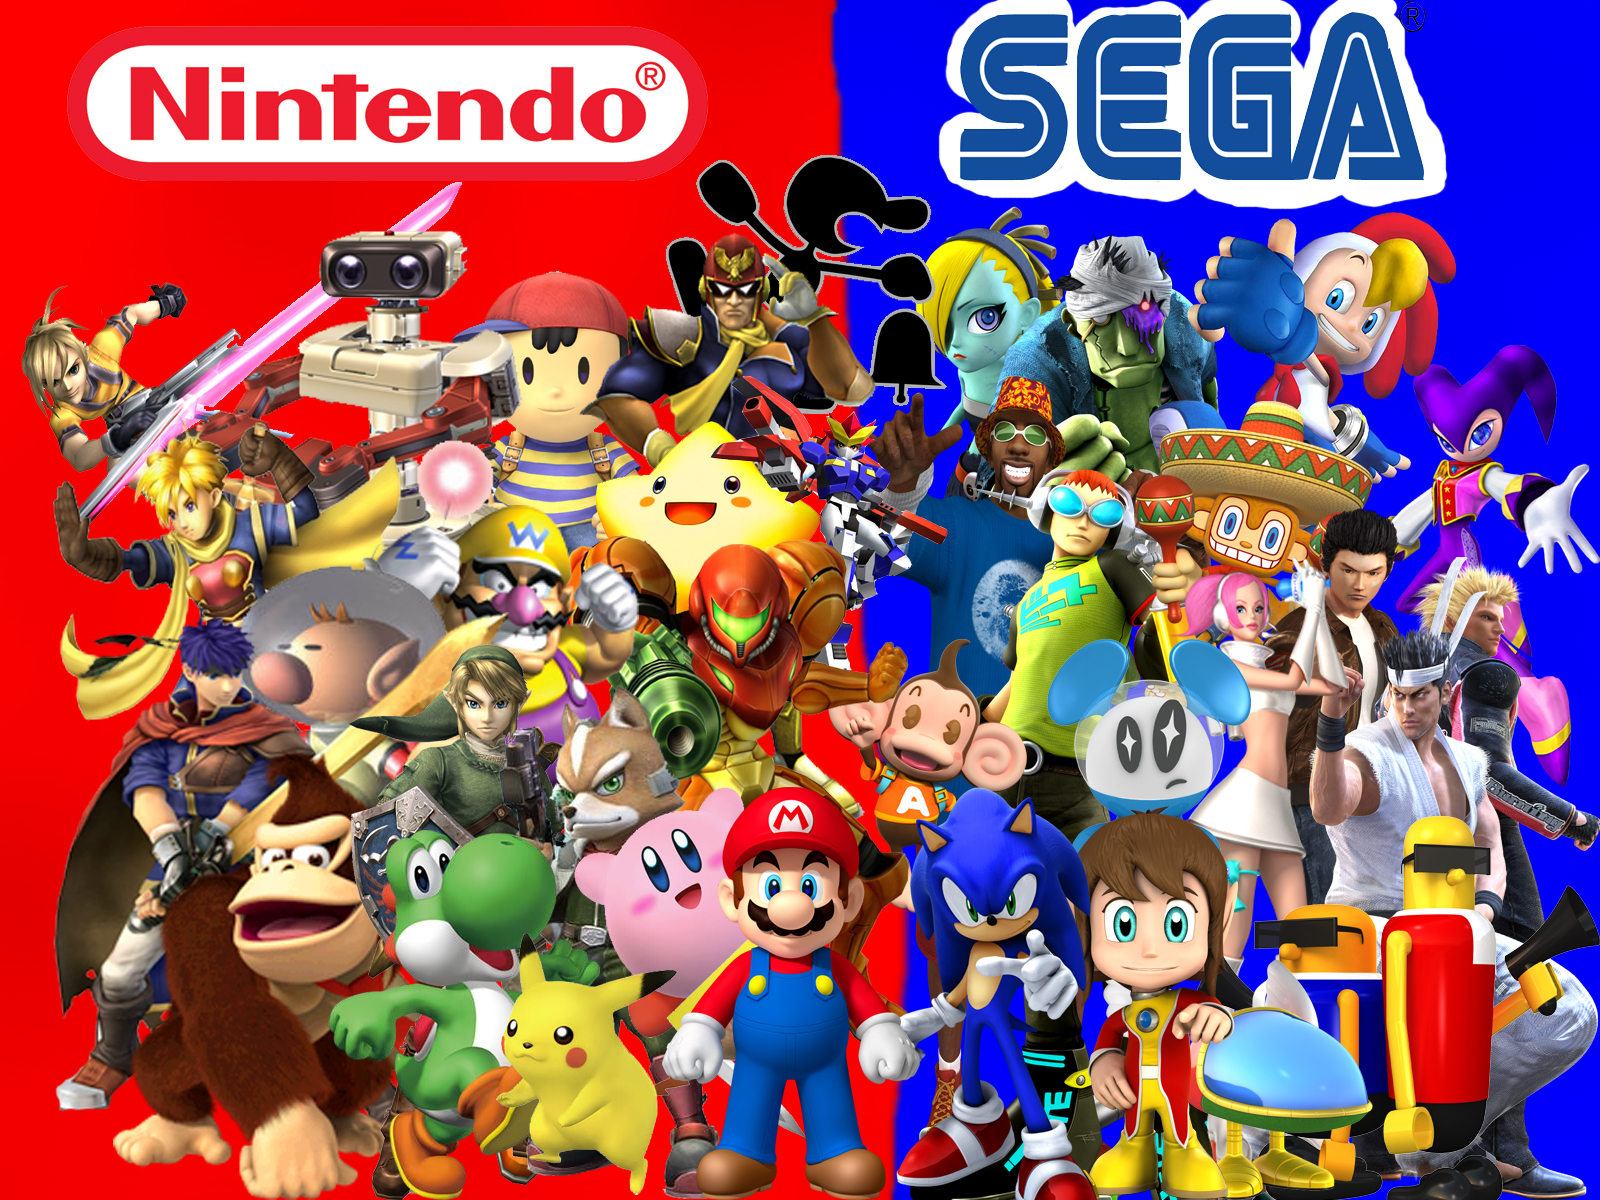 5 reasons why Nintendo should buy Sega